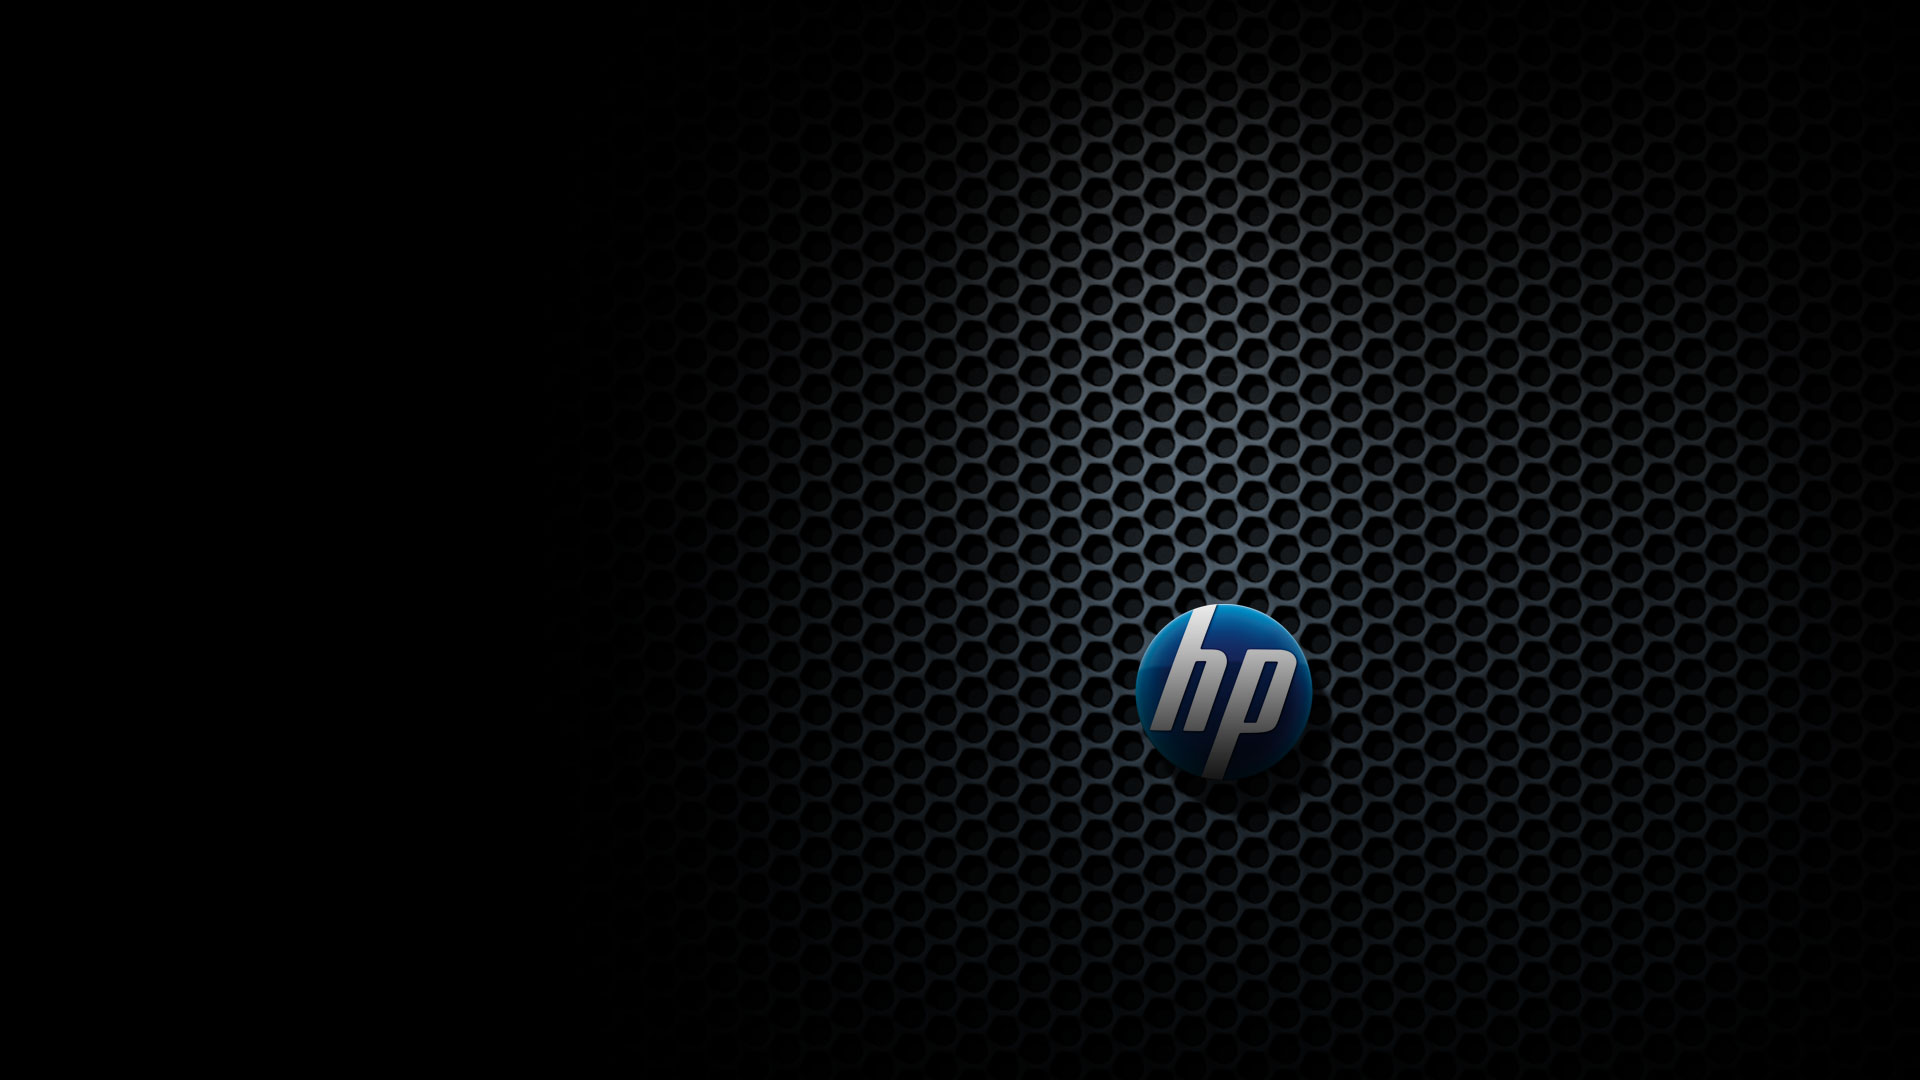 download windows hp wallpapers gallery